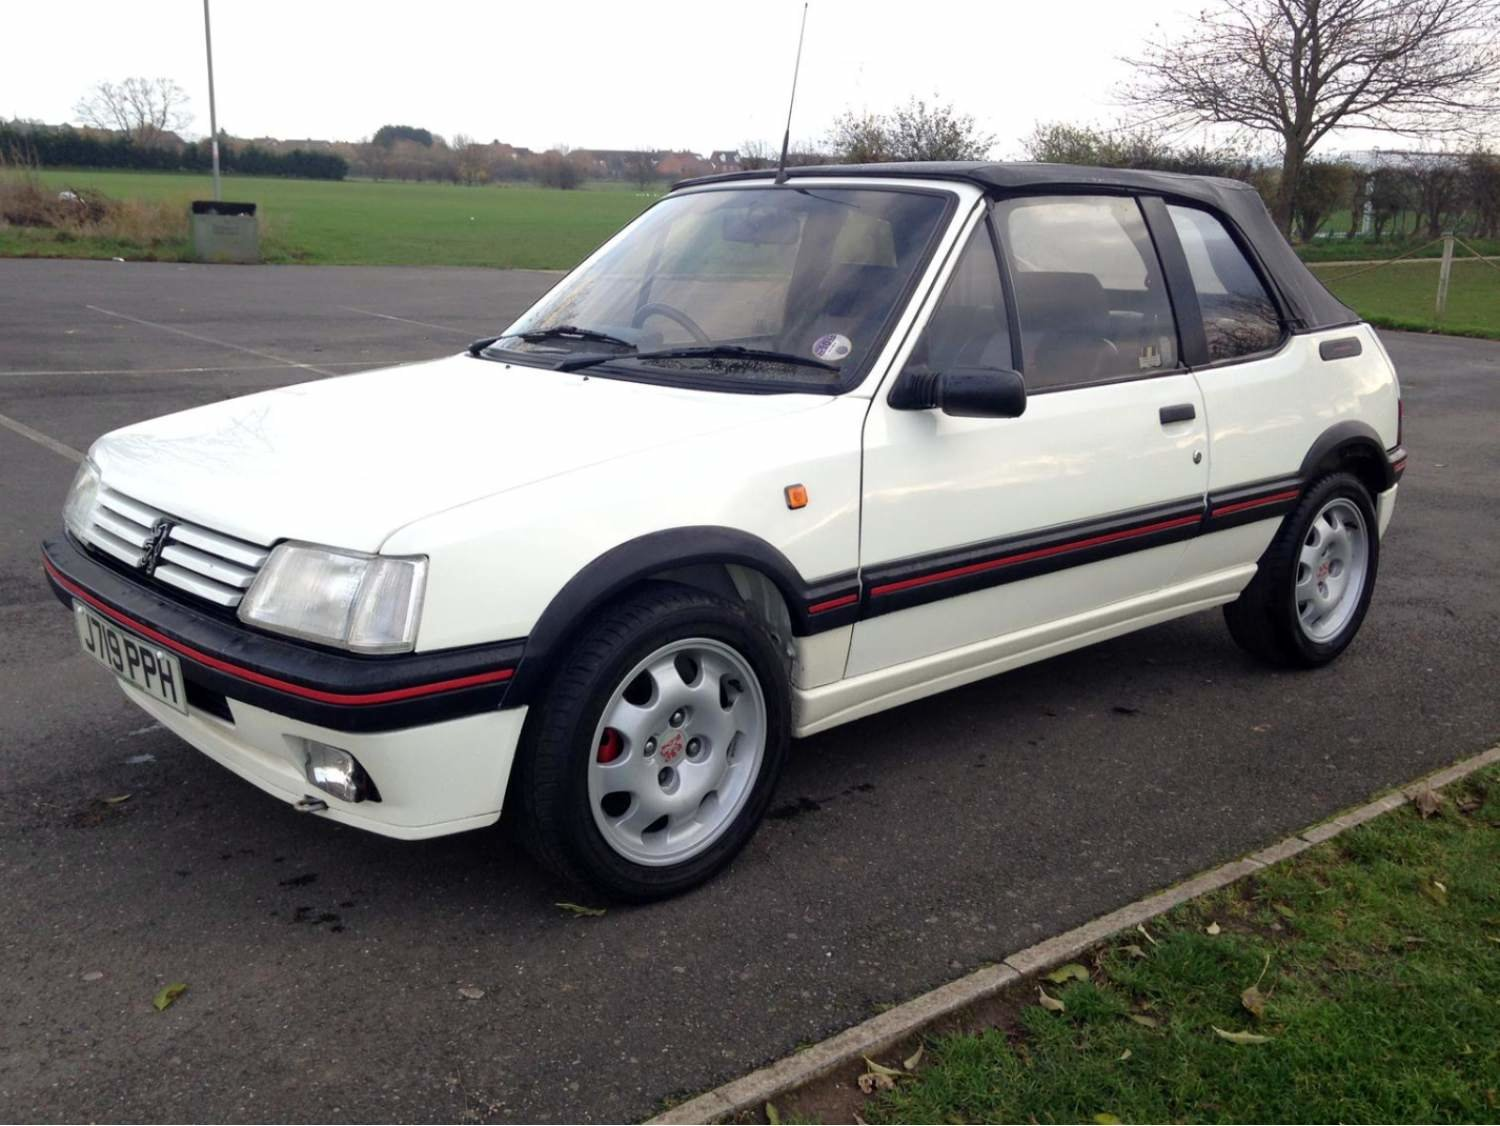 1992 Peugeot Cabriolet CTI (GTI) 1.9L 5 speed man For Sale (picture 2 of 6)